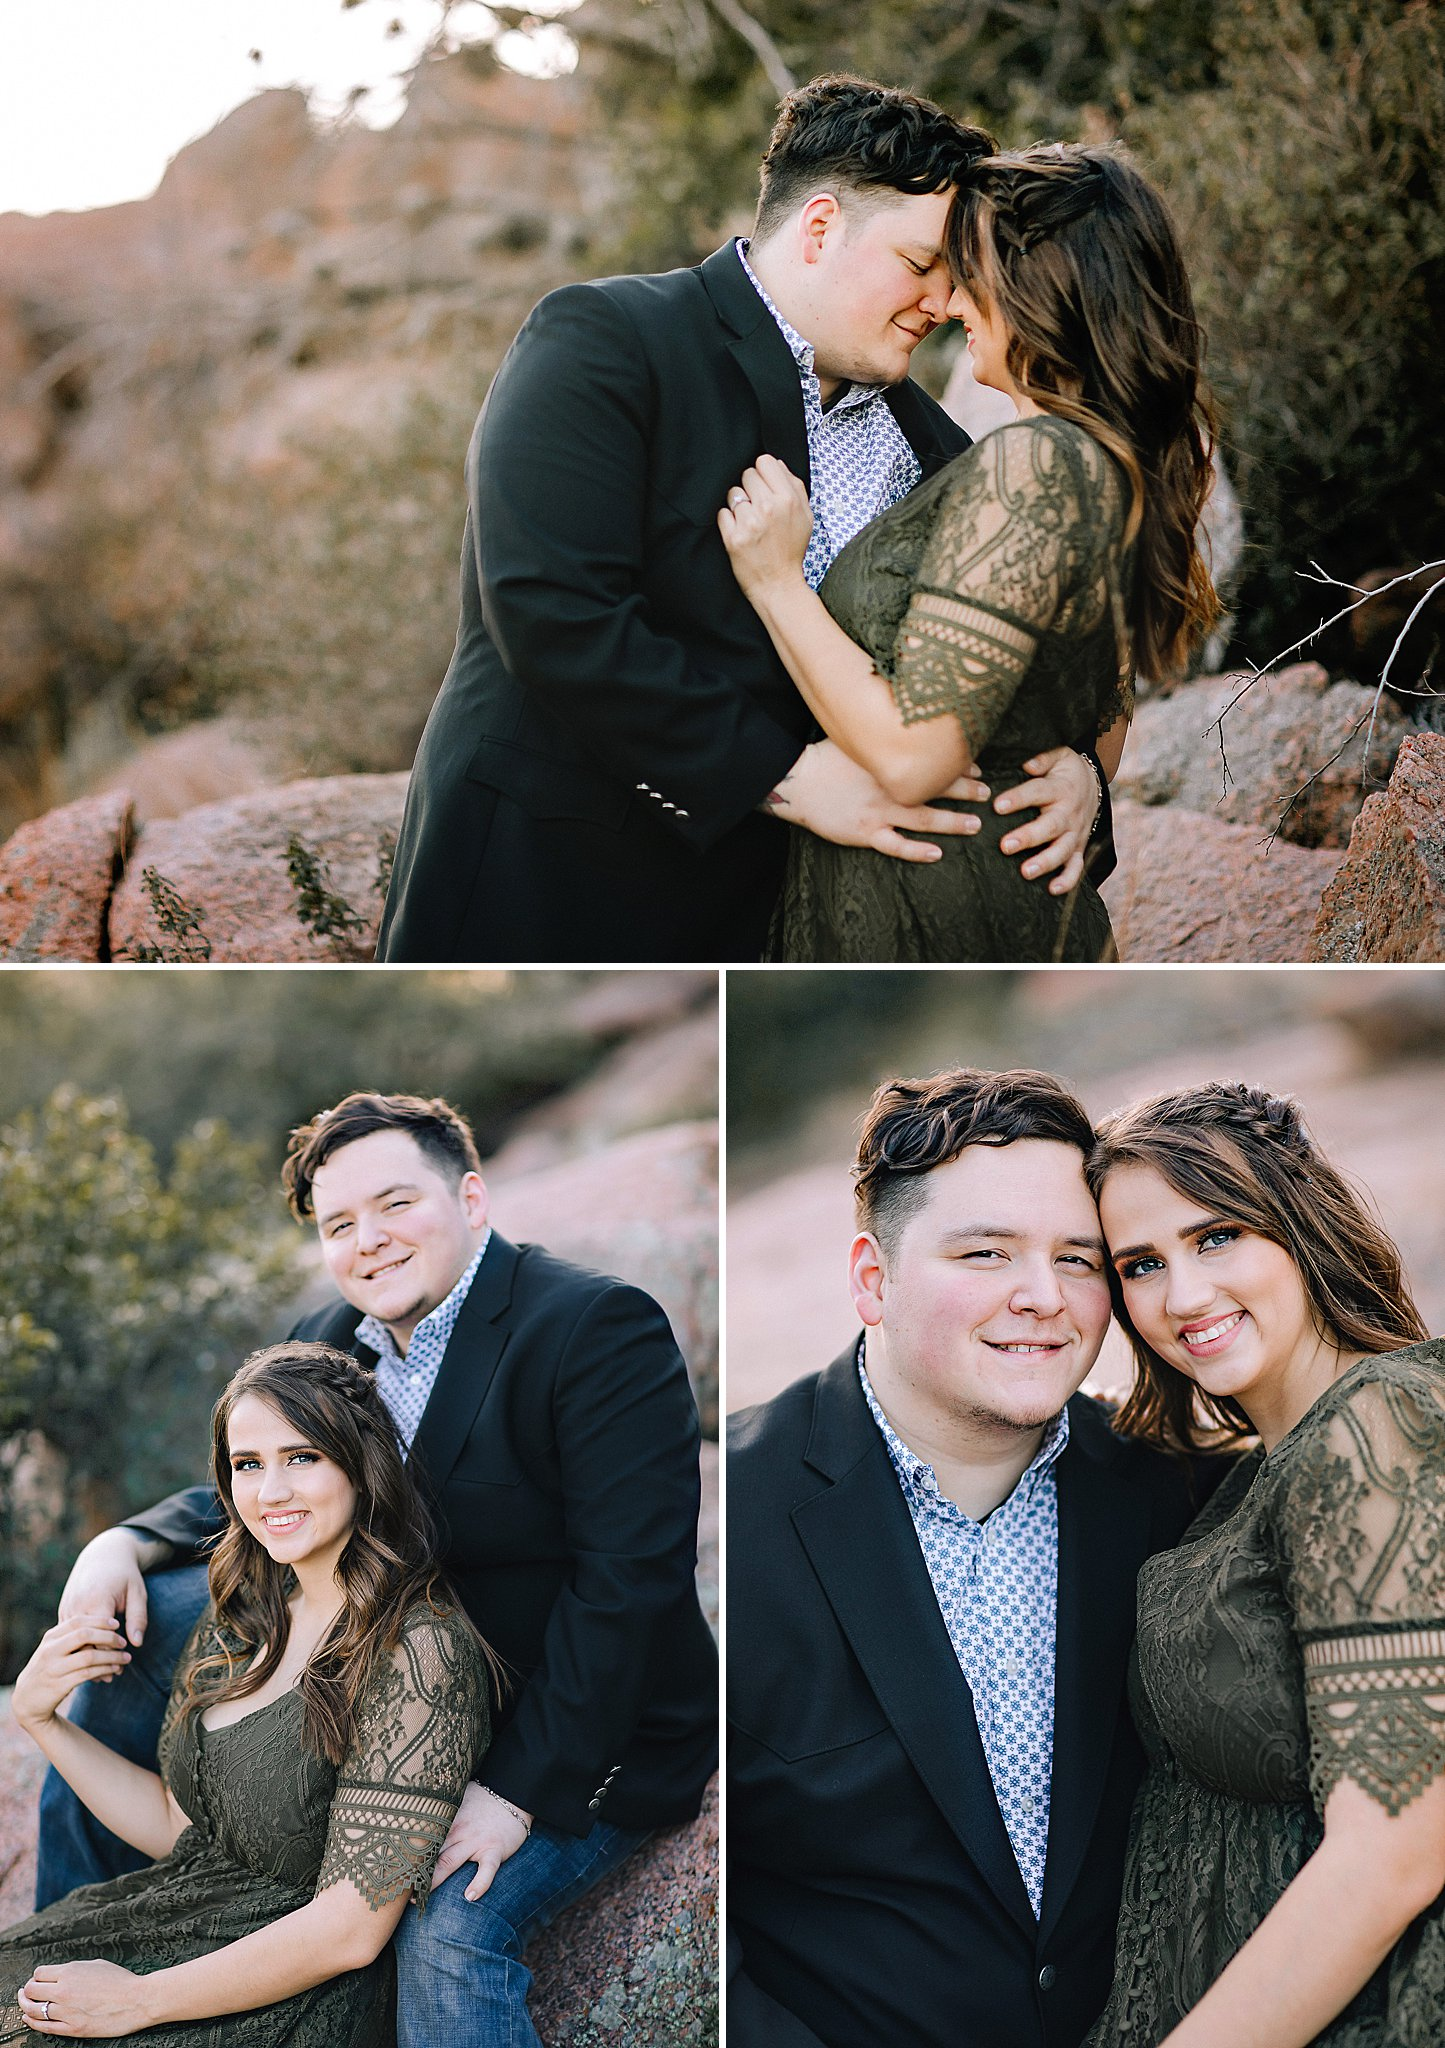 Carly-Barton-Photography-Fredericksburg-Texas-Engagement-Session-Enchanted-Rock-Photos_0004.jpg